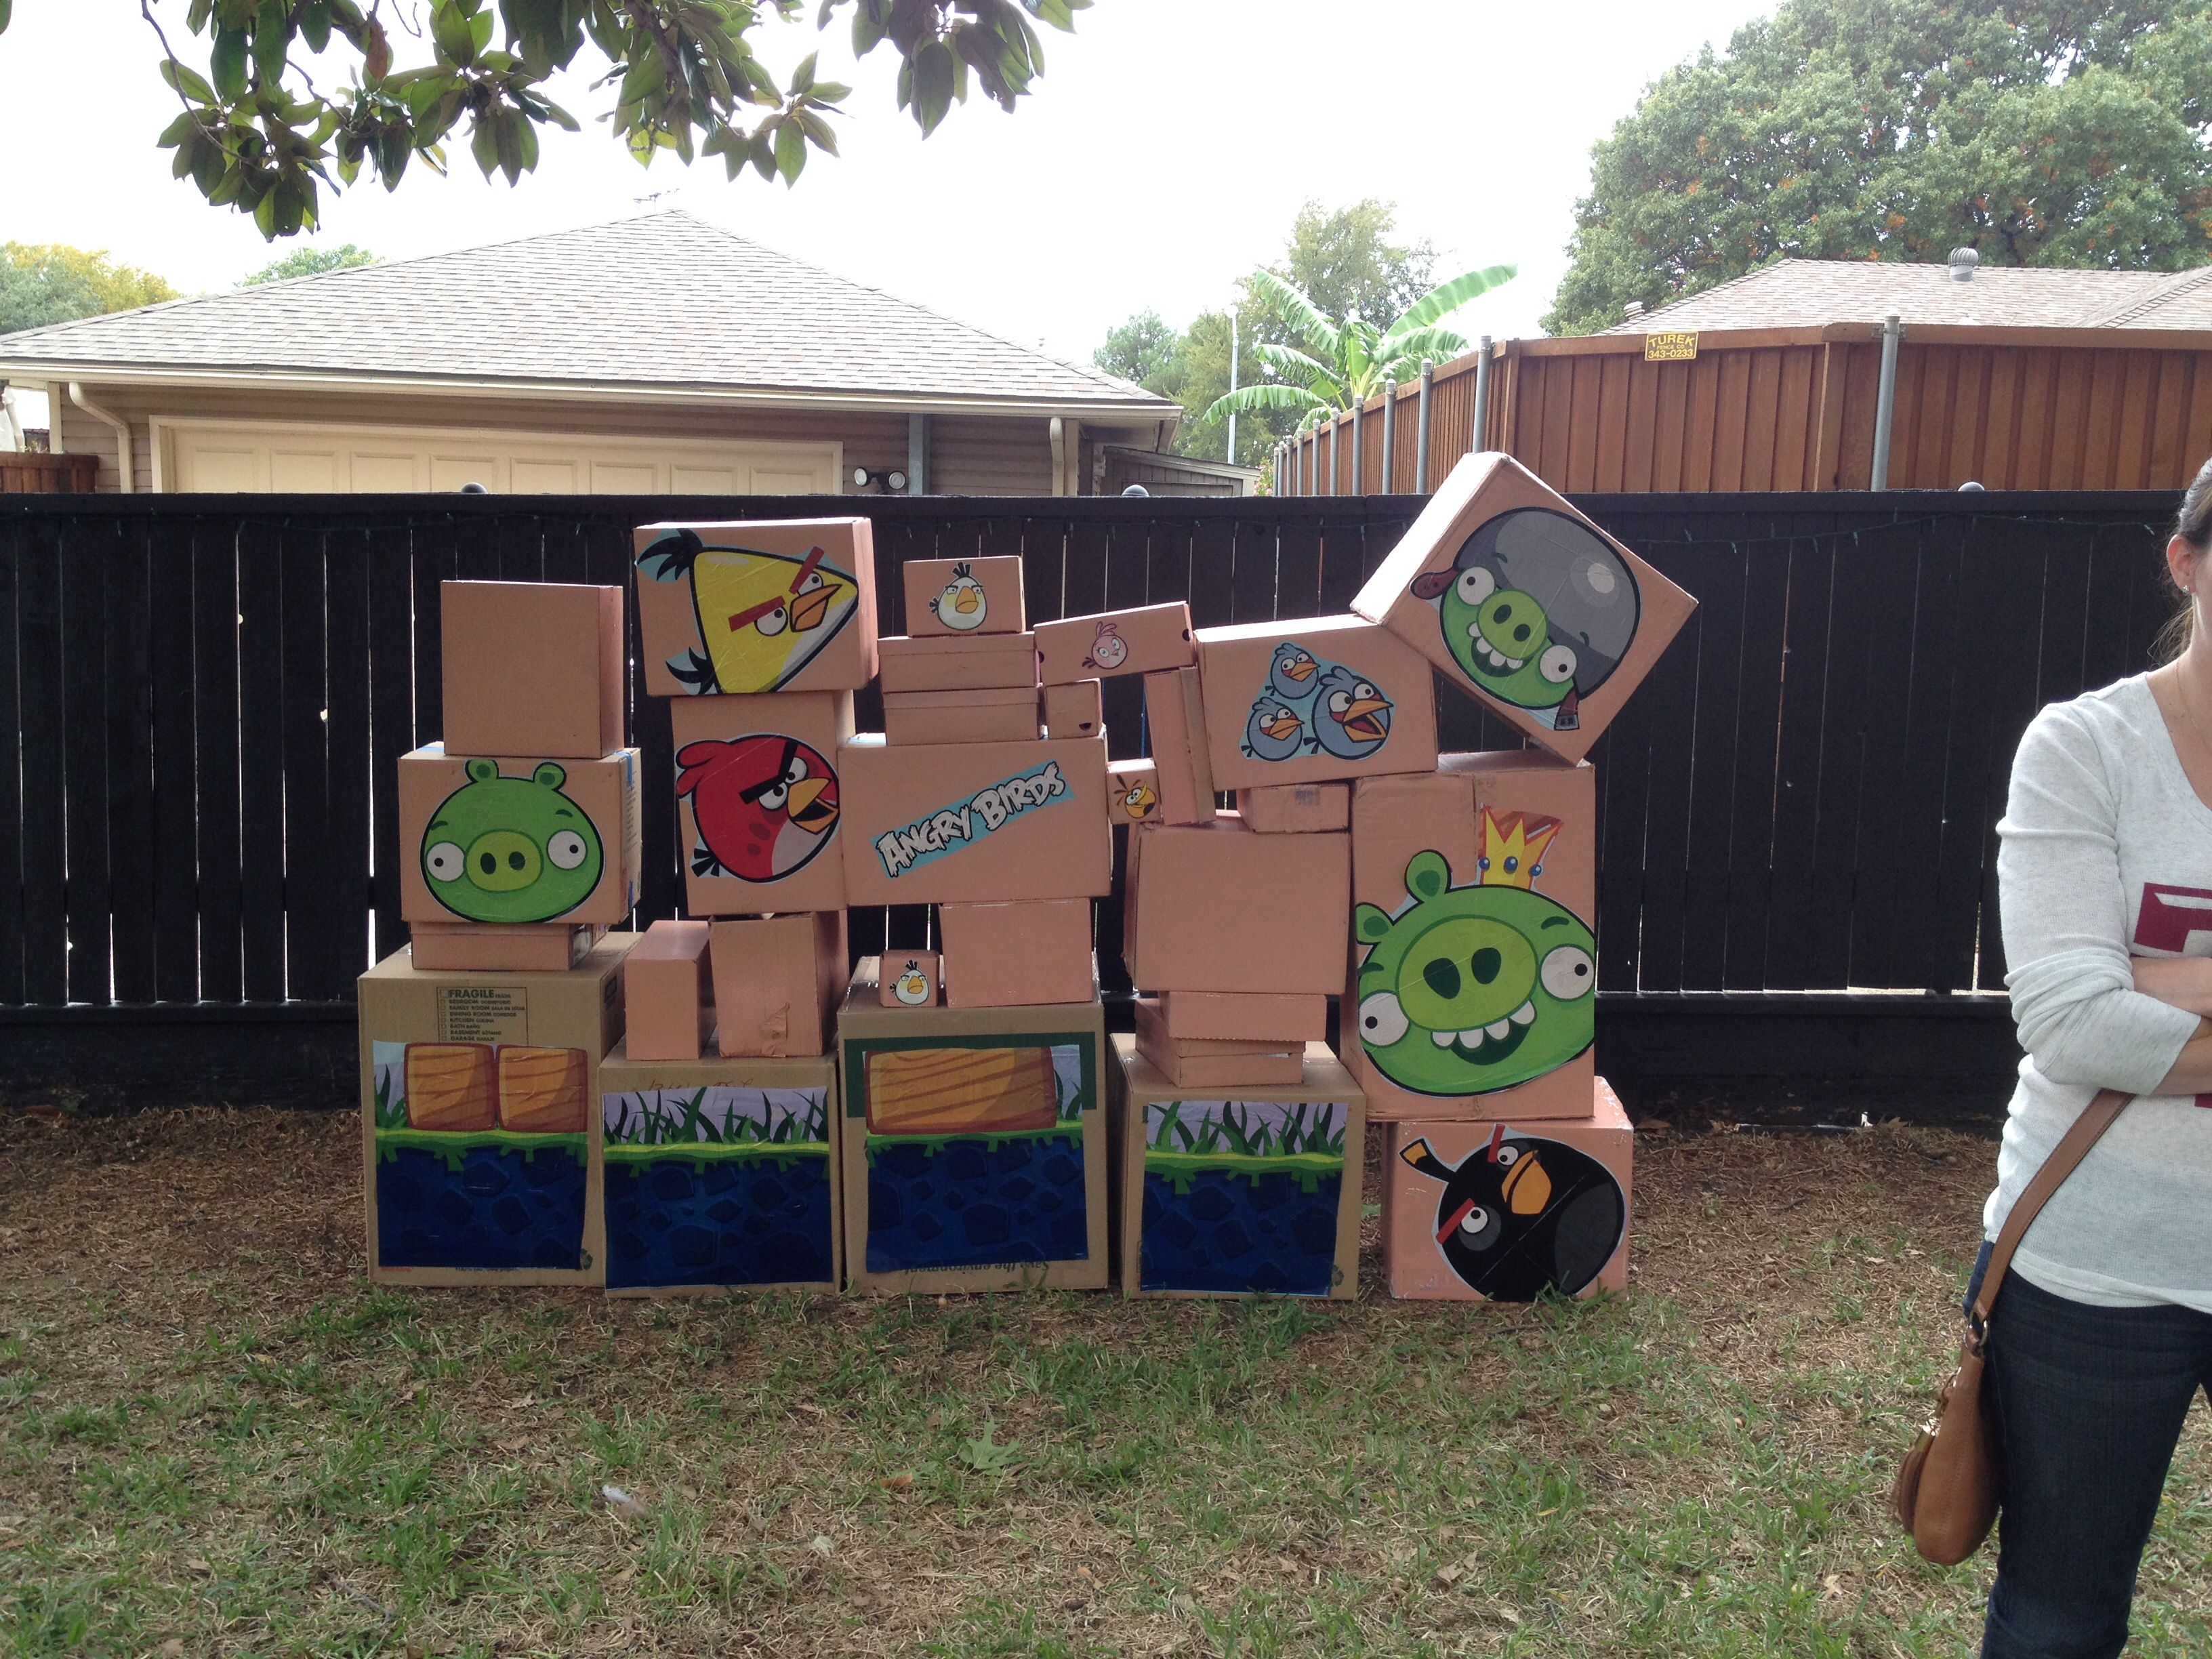 Angrybirds Life Size Backyard Party Game